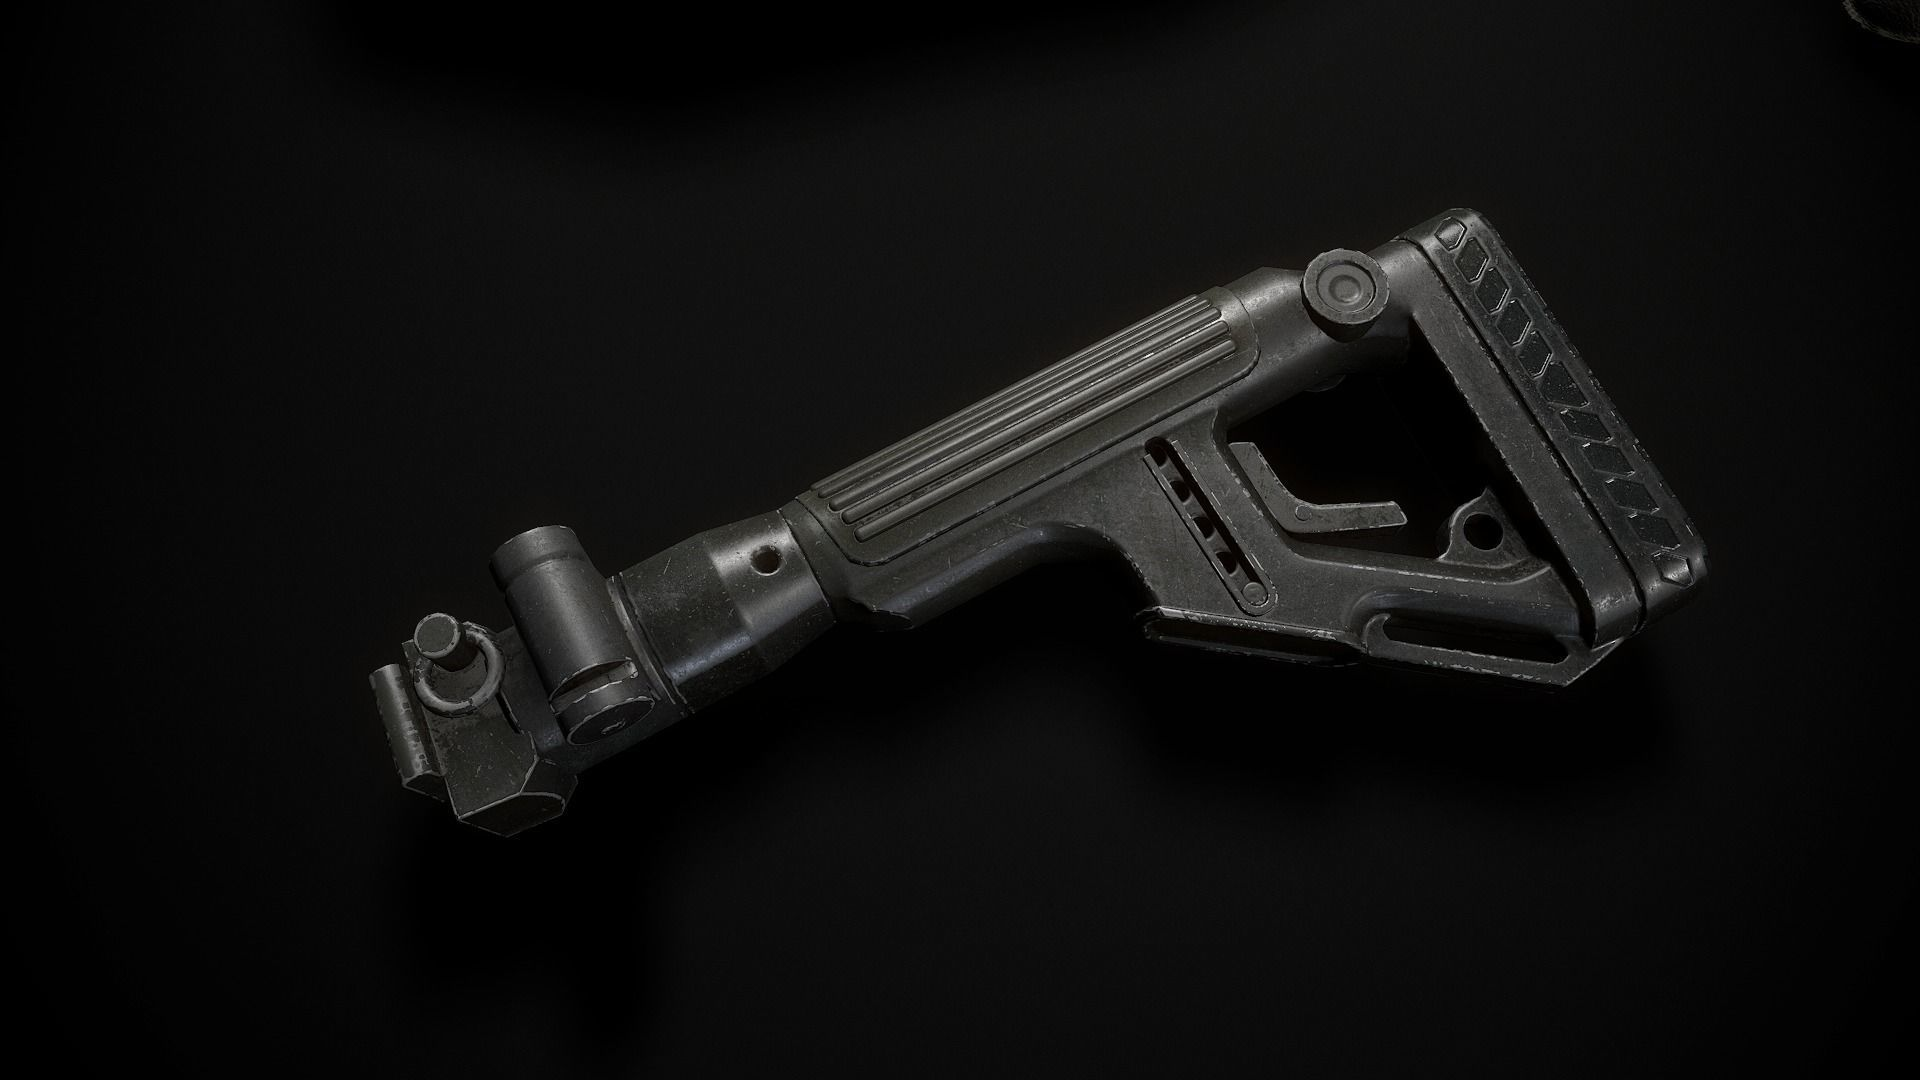 Butt of the rifle AK